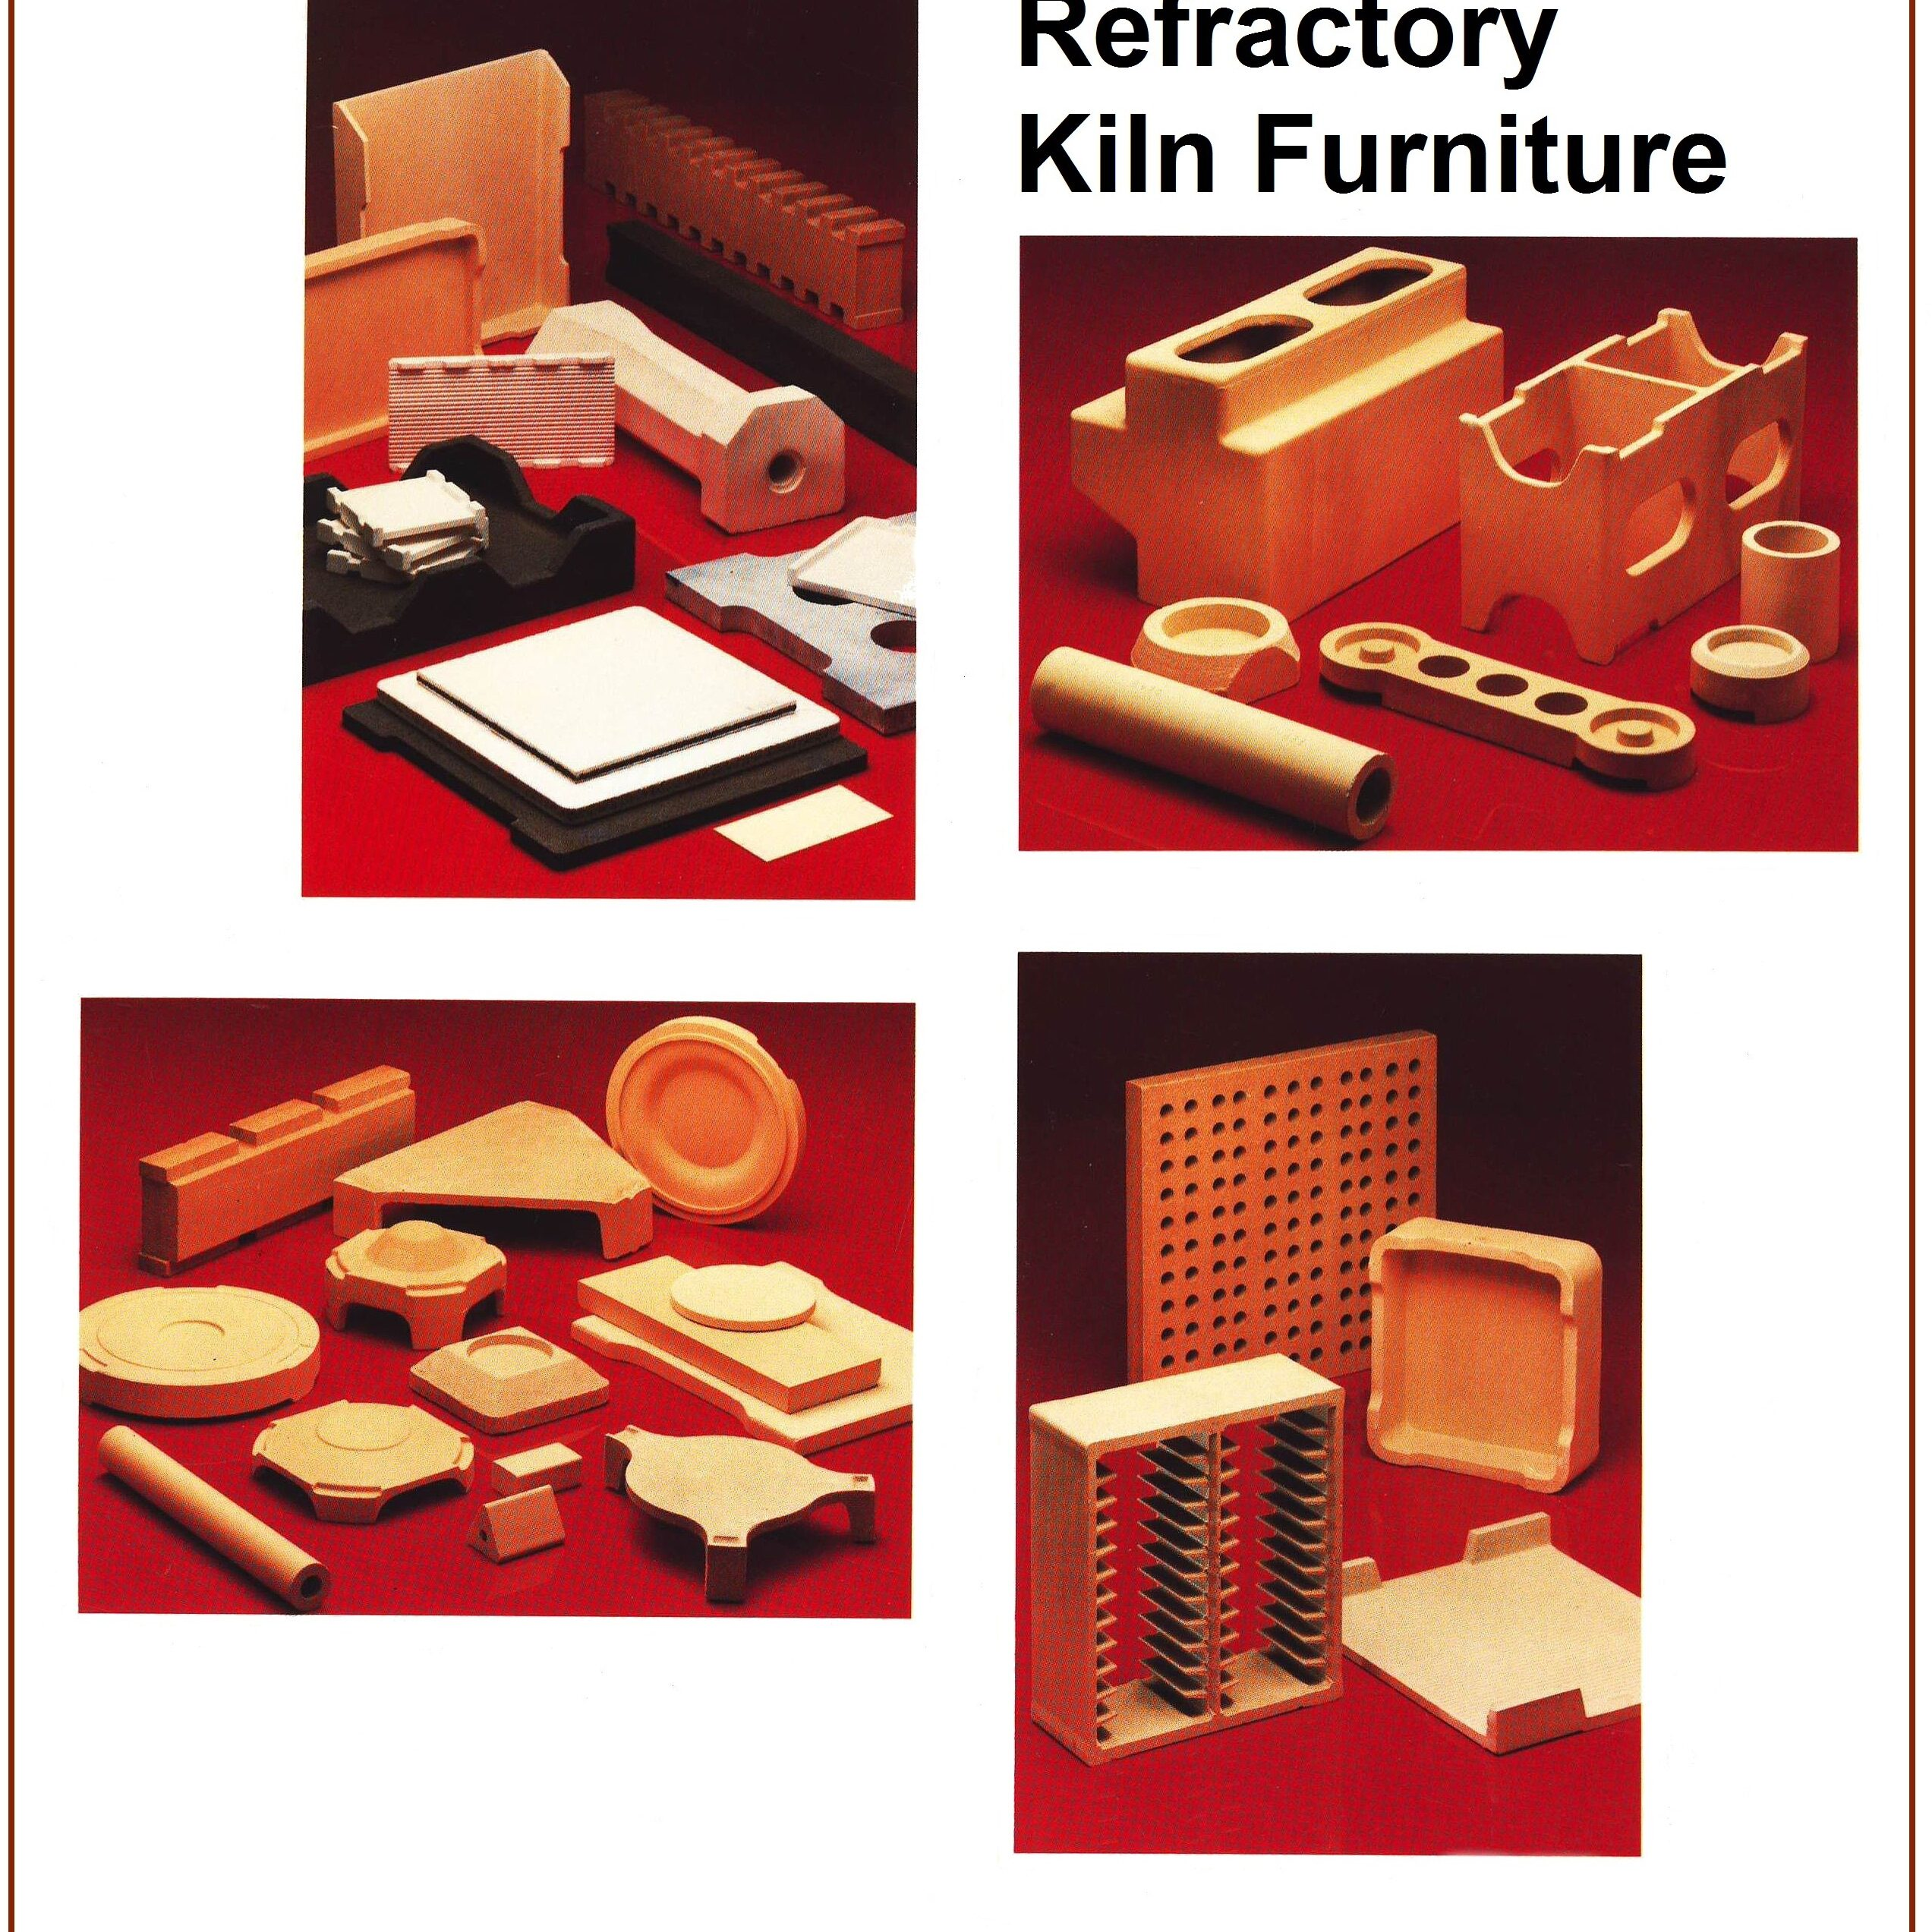 Kiln Furniture